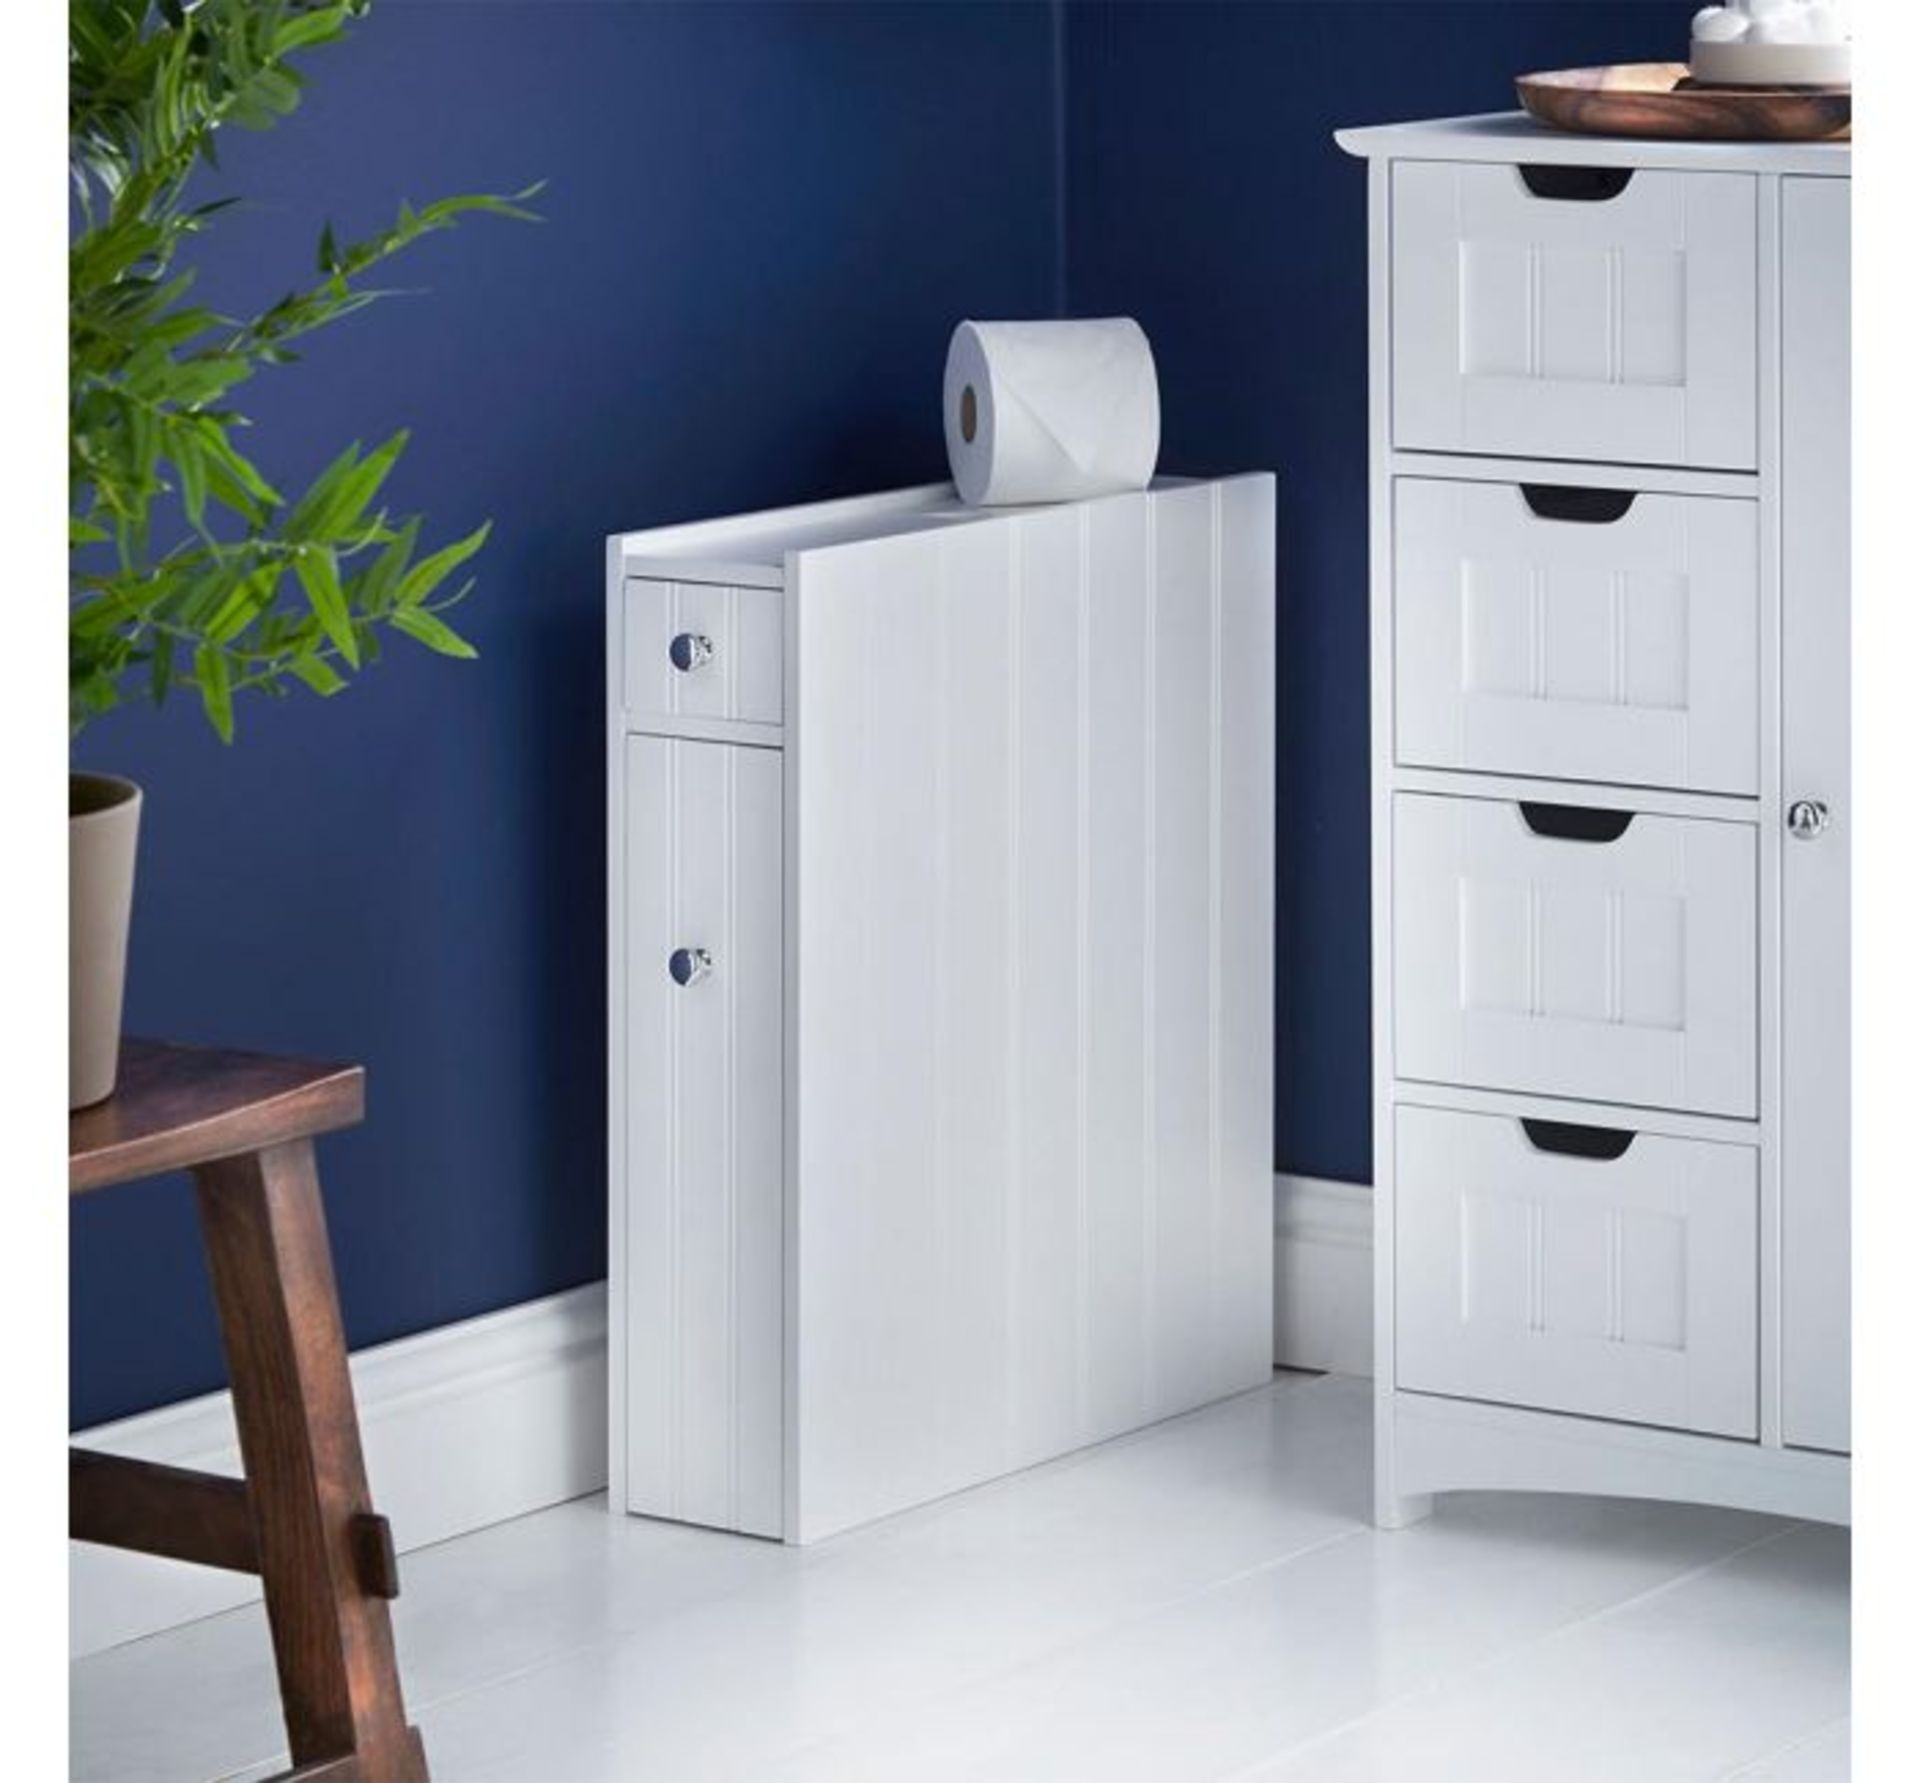 Lot 809 - (QP154) Colonial Slimline Storage Unit MDF with chrome handles Water resistant & easy to(QP154)